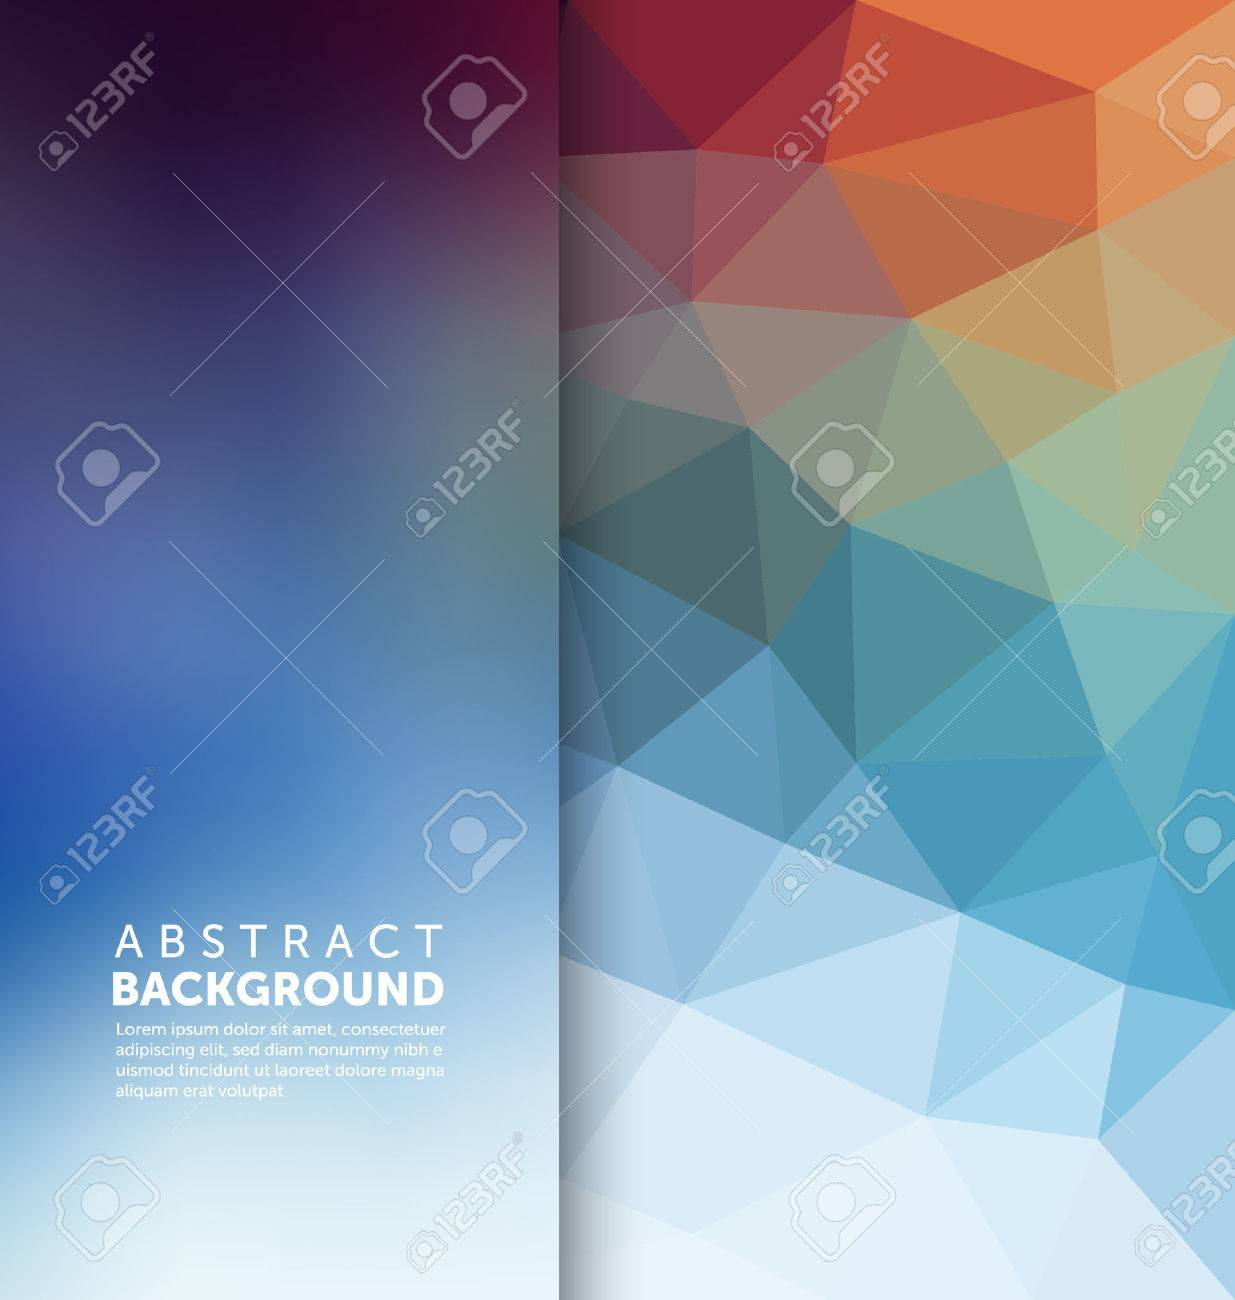 Abstract Background - Triangle and blurred banner design - 45168349